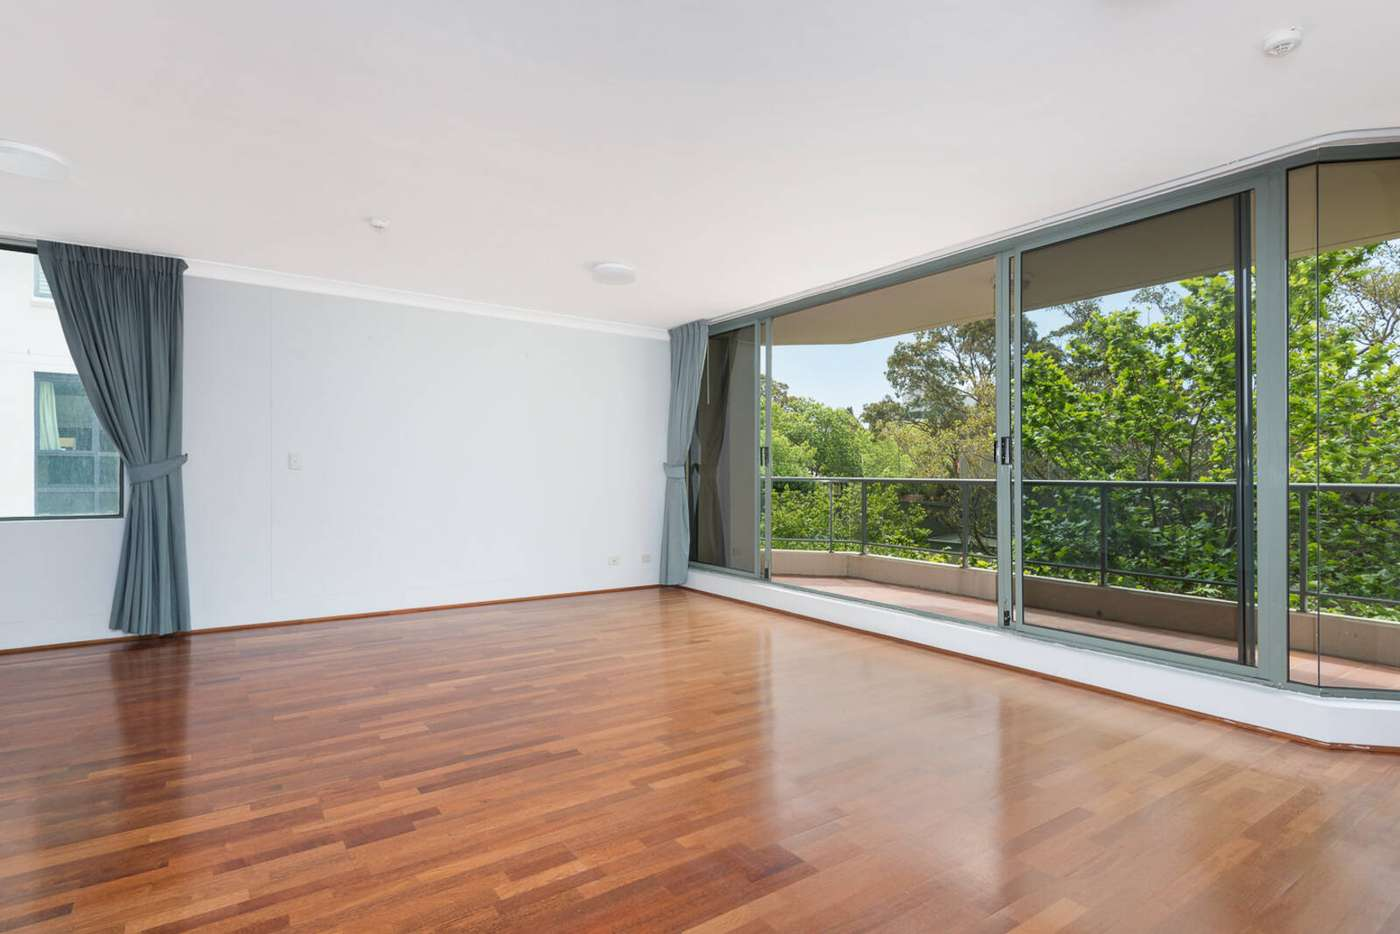 Main view of Homely apartment listing, 401/37-39 McLaren Street, North Sydney NSW 2060